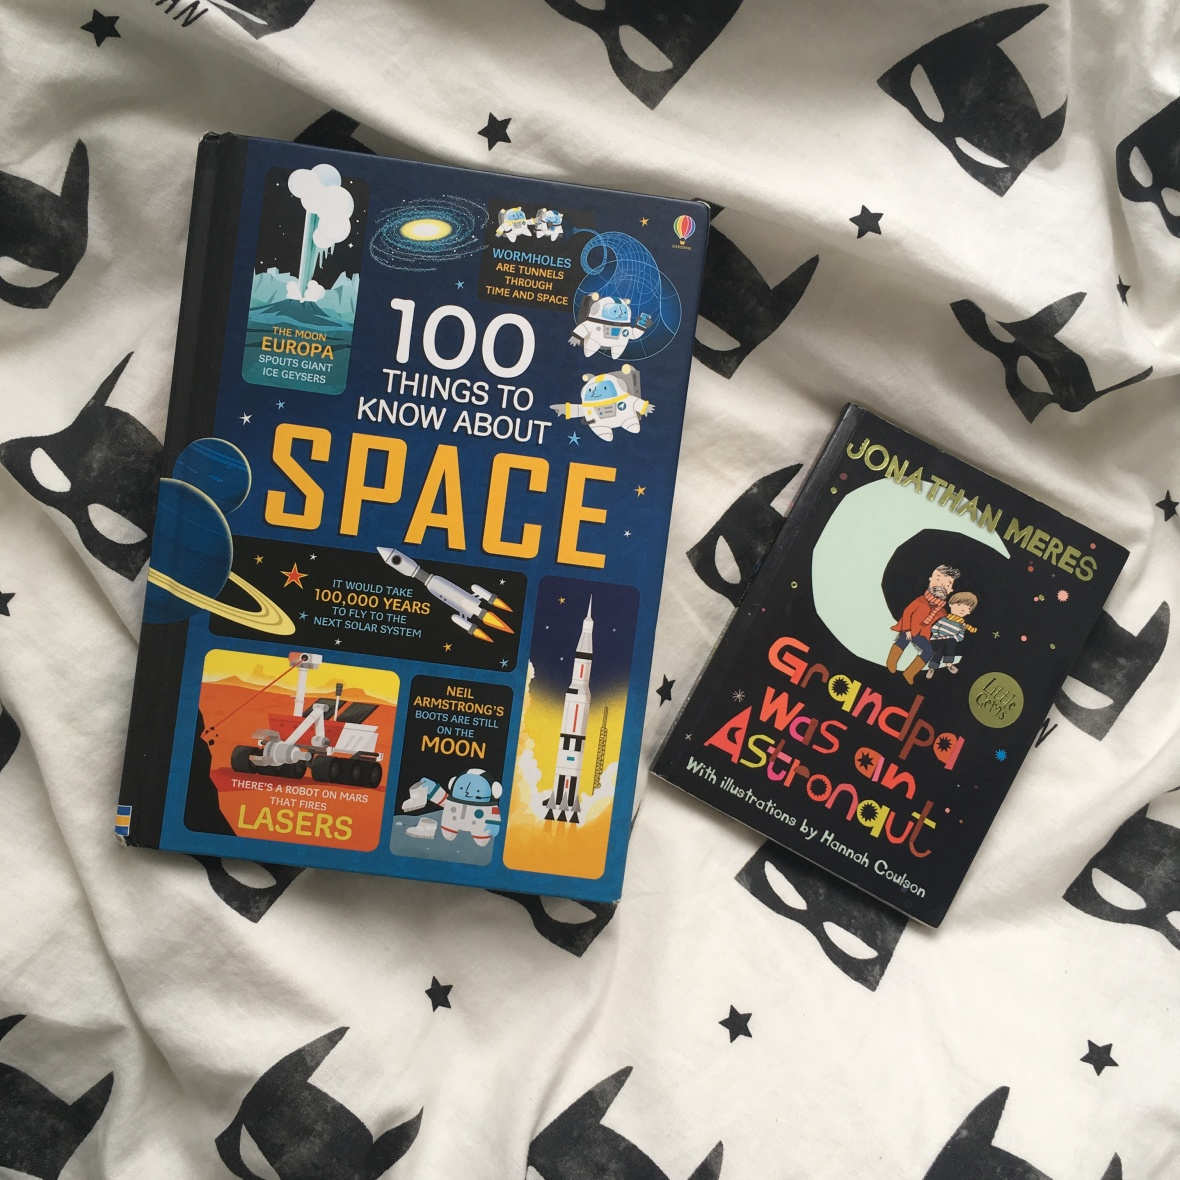 Two children's books on batman bedding. The larger book on the left is 100 Things to Know About Space and the other book is Grandpa Was an Astronaut by Jonathan Meres.